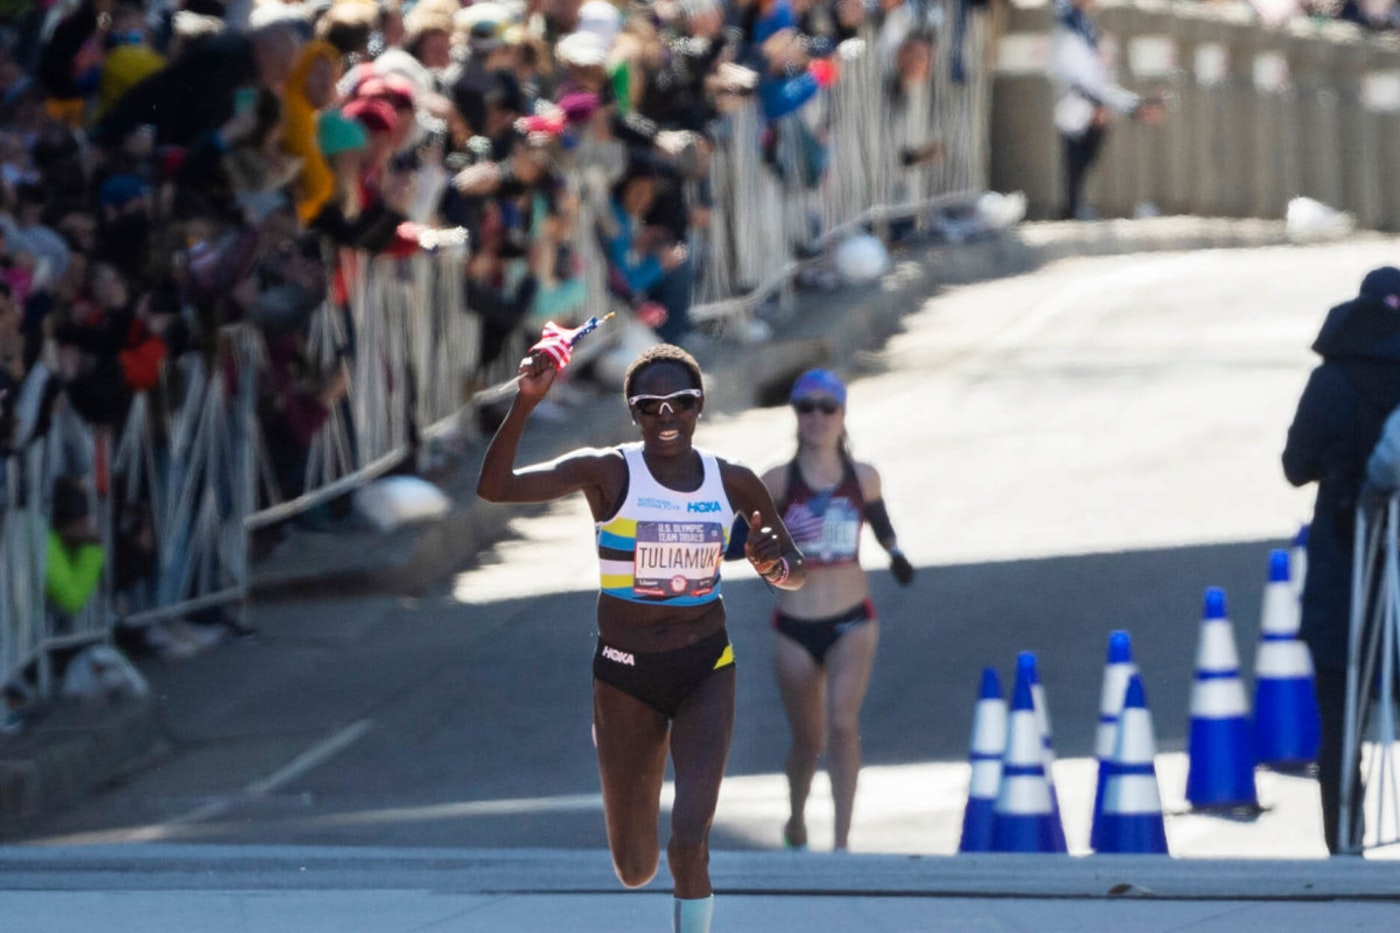 FILE - In this Feb. 29, 2020, file photo, first place finisher Aliphine Tuliamuk leads second place finisher Molly Seidel to the finish in the U.S. Olympic marathon trials in Atlanta. Tuliamuk will have company in Tokyo with her baby, Zoe, allowed to travel with her. The original plan was to start a family after the Tokyo Olympics. But when the Summer Games were postponed by the pandemic, the 32-year-old Tuliamuk and her fiance, Tim Gannon, decided not to wait. (AP Photo/John Amis, File)